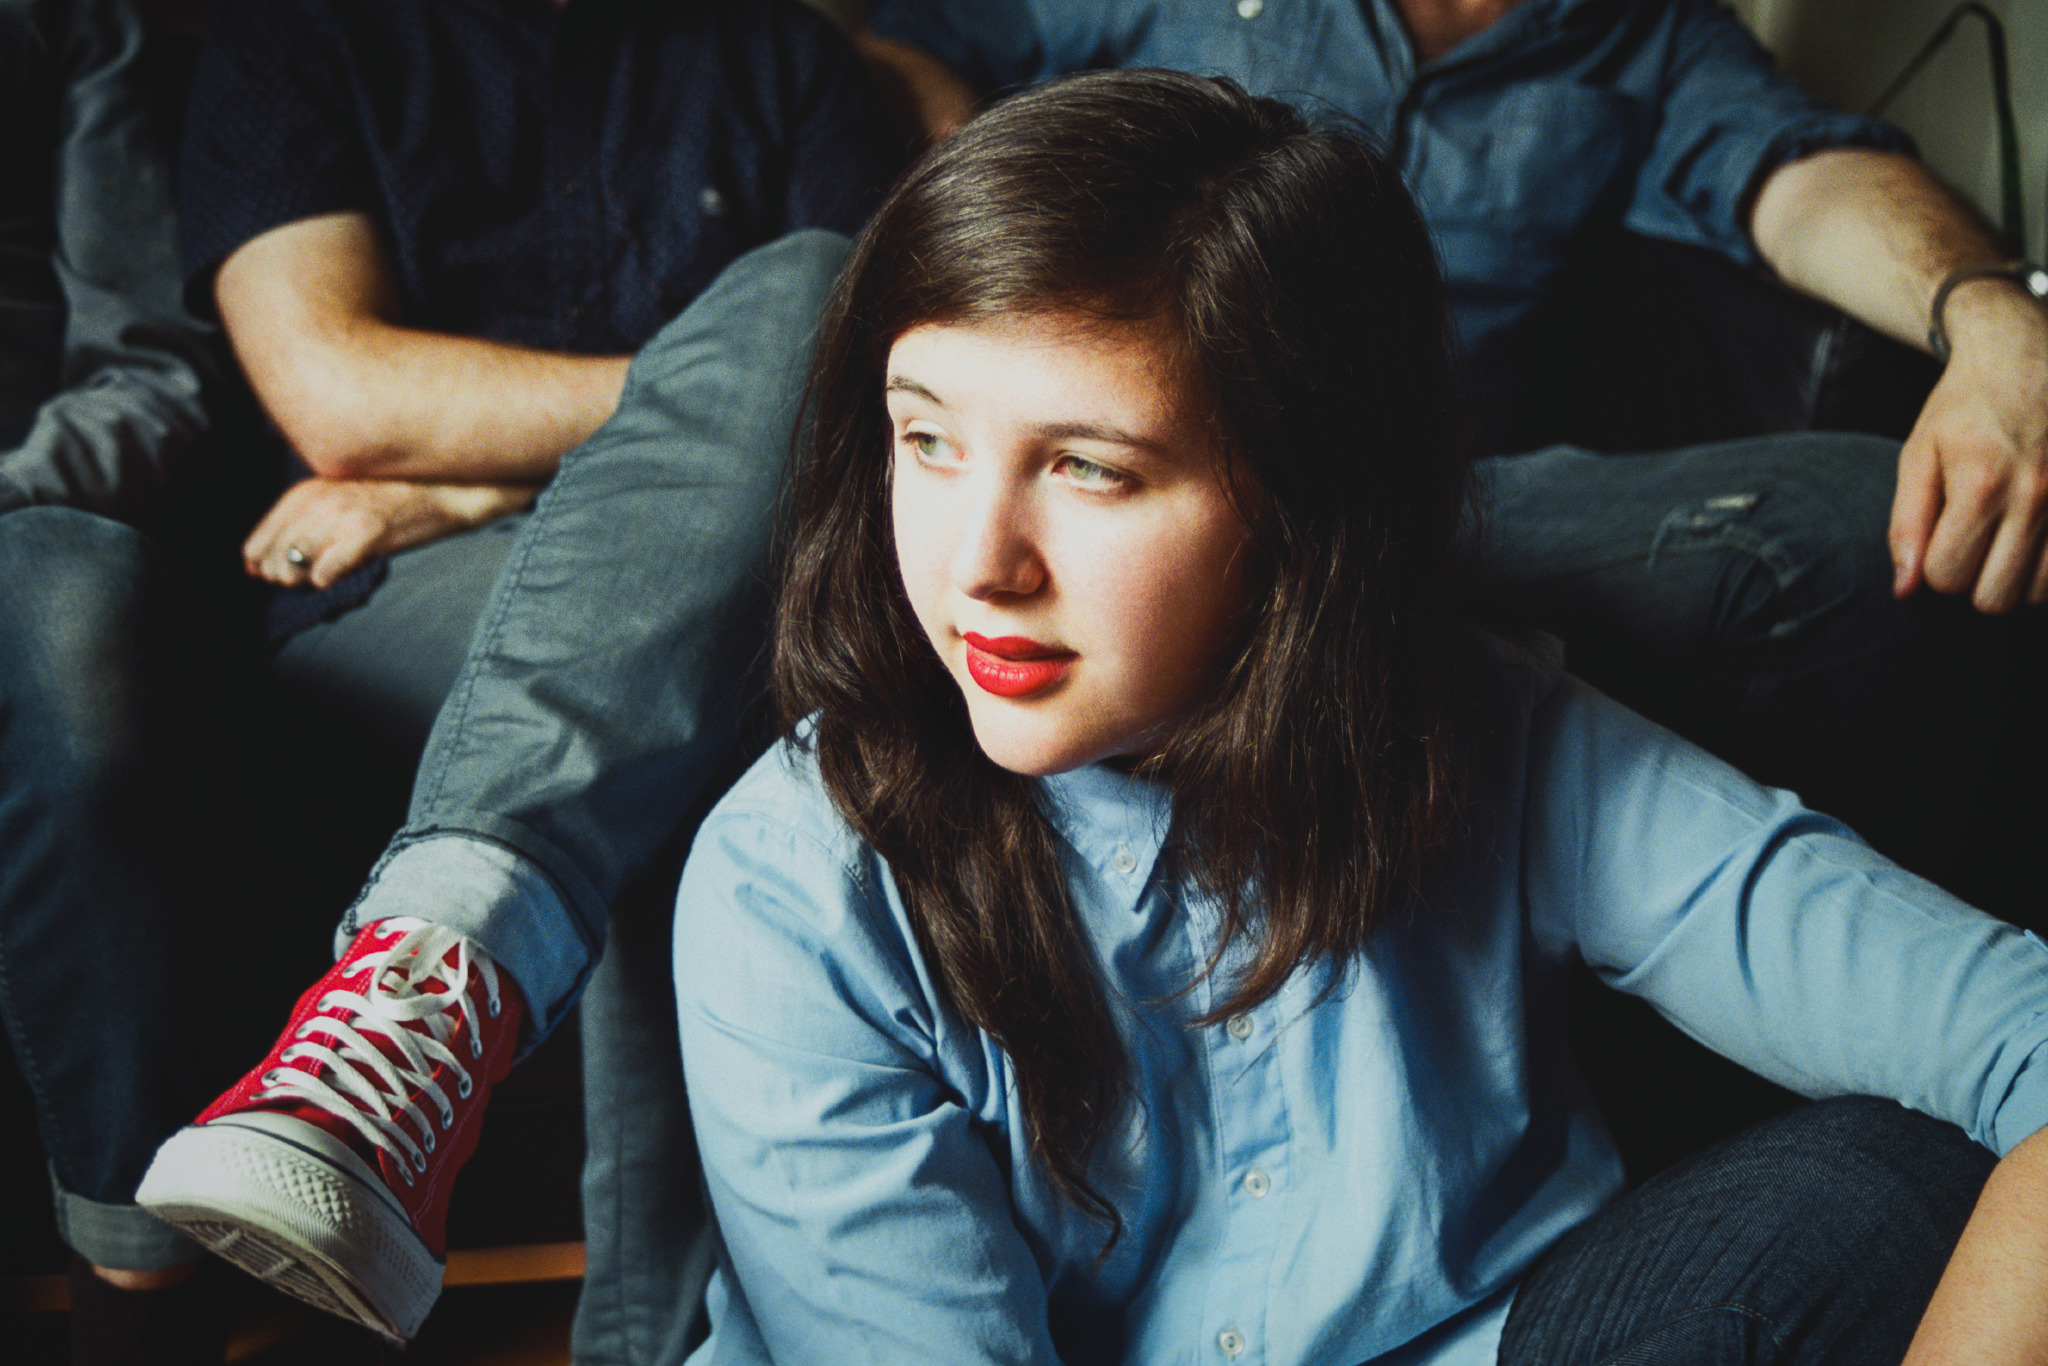 Lucy Dacus performs at Mohawk Place on April 1.